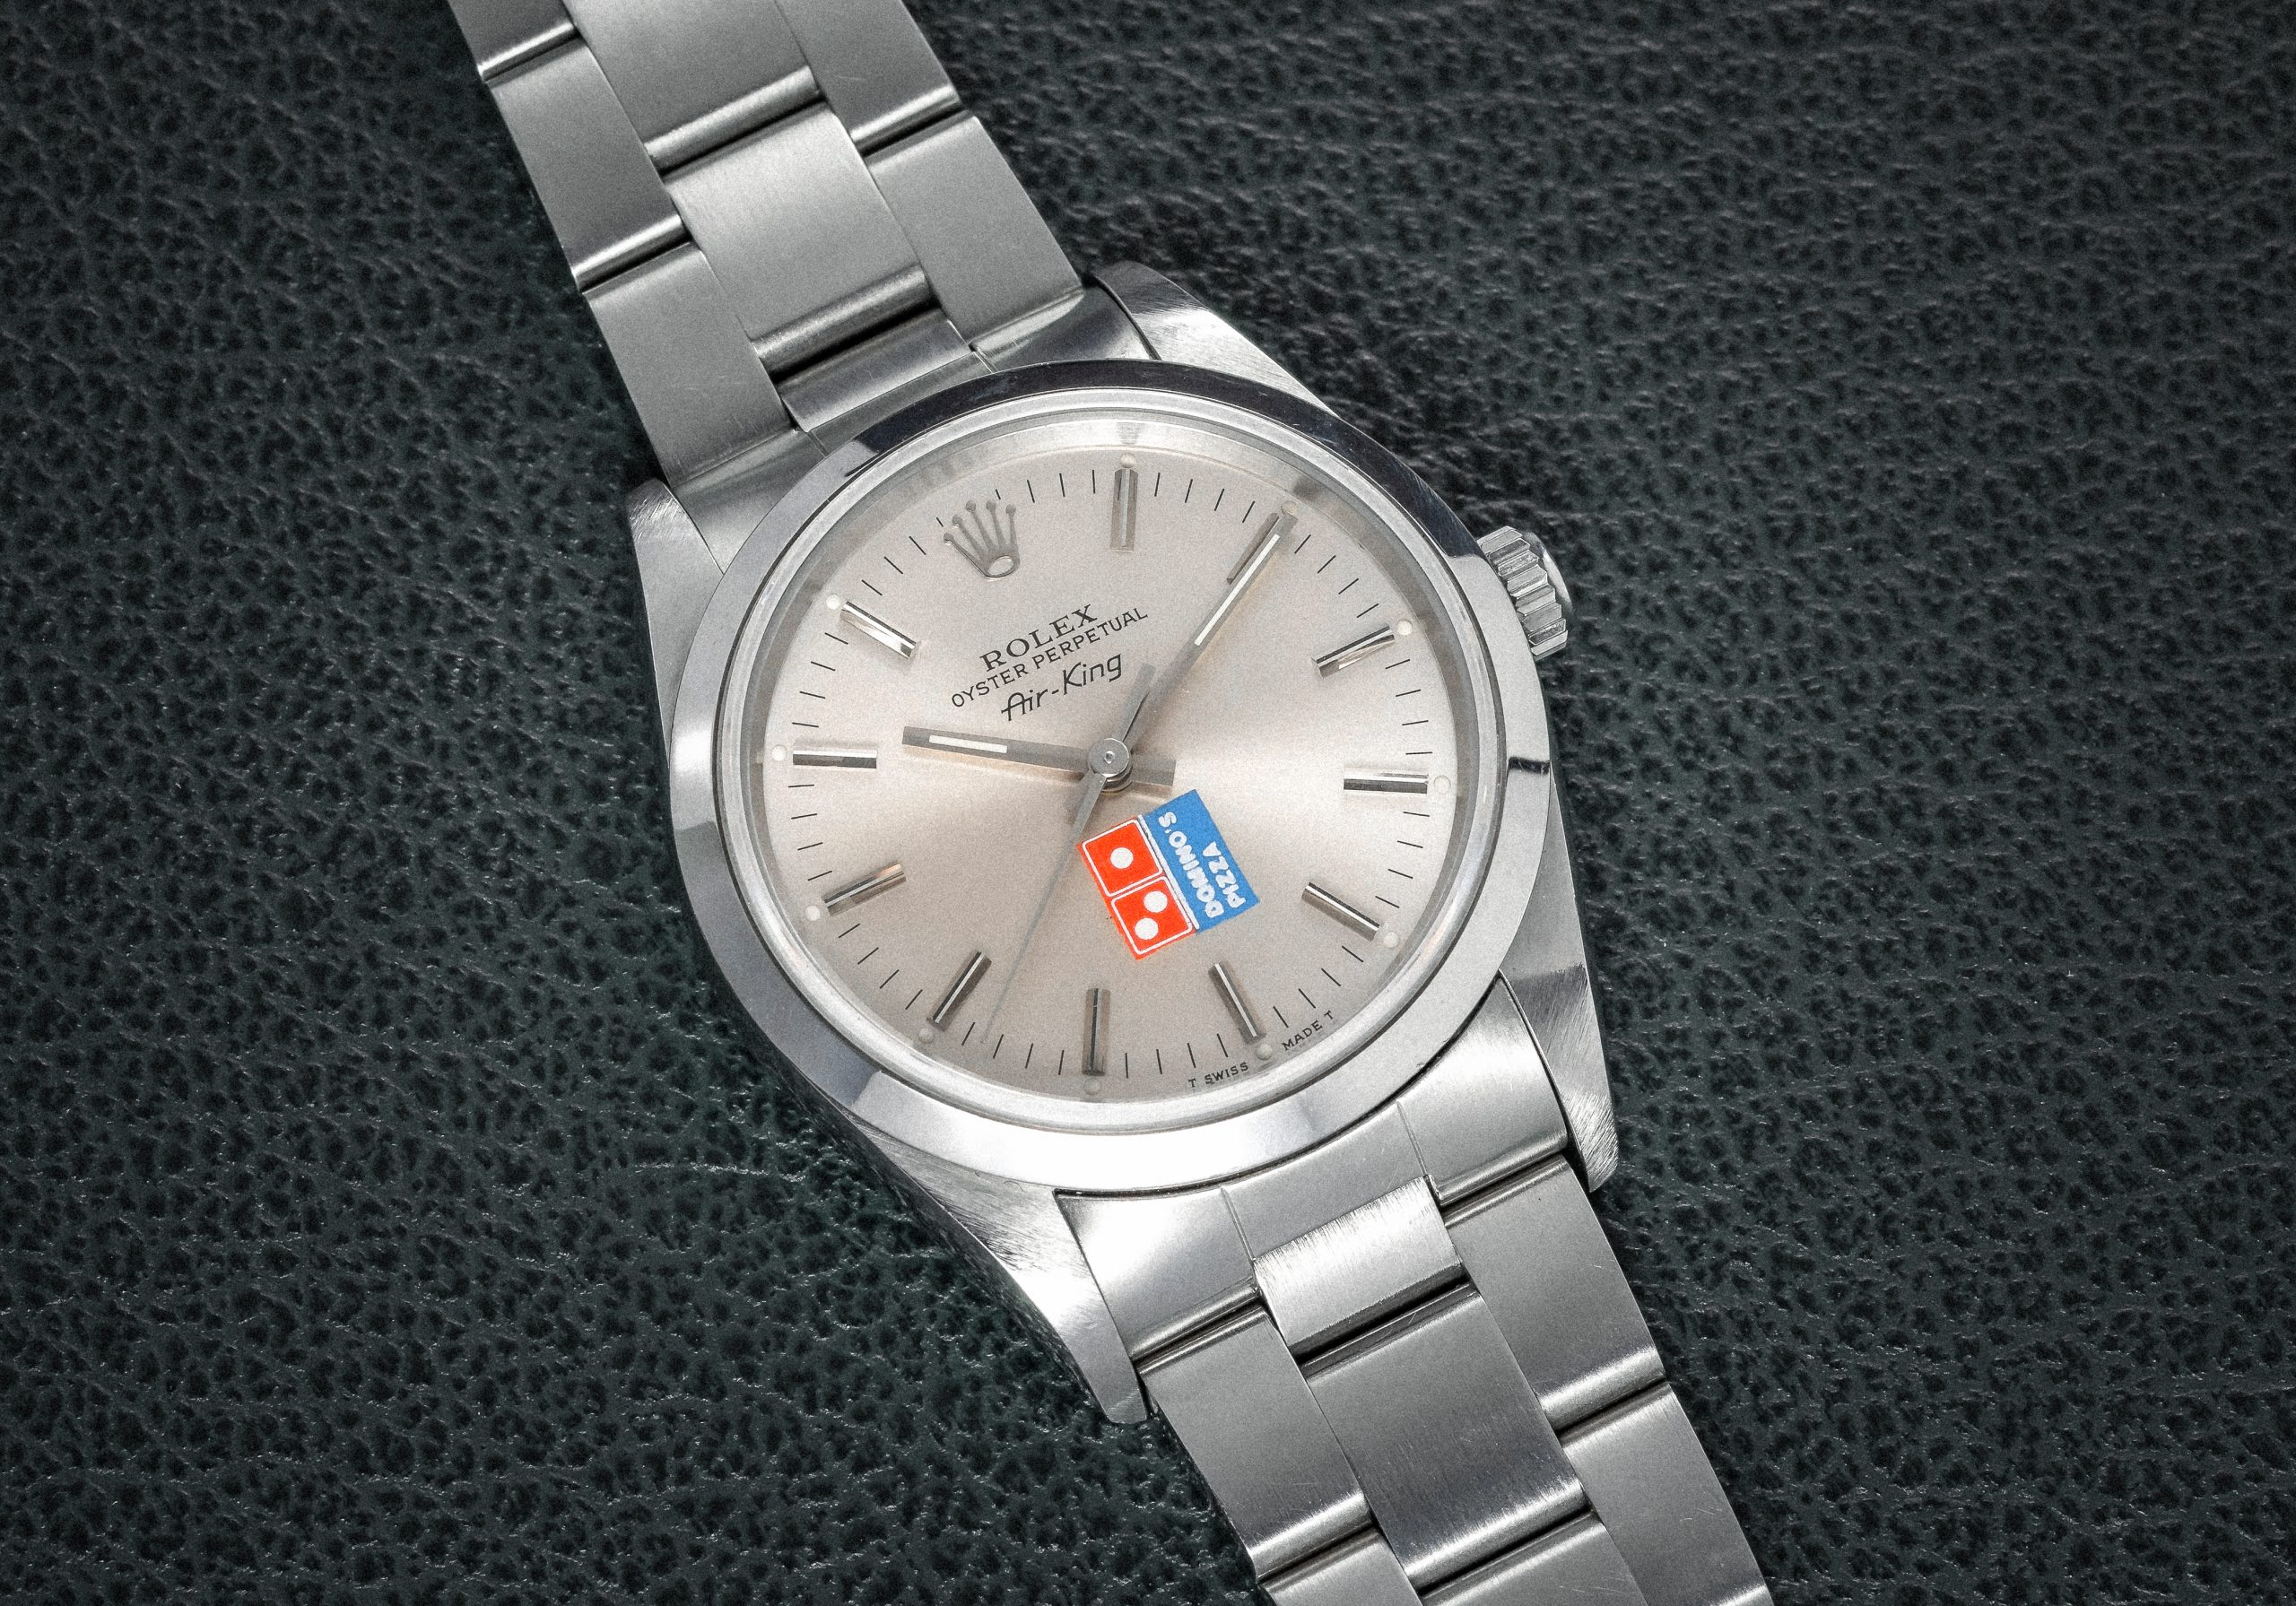 Rolex-14000-Air-King-Domino's-Dial